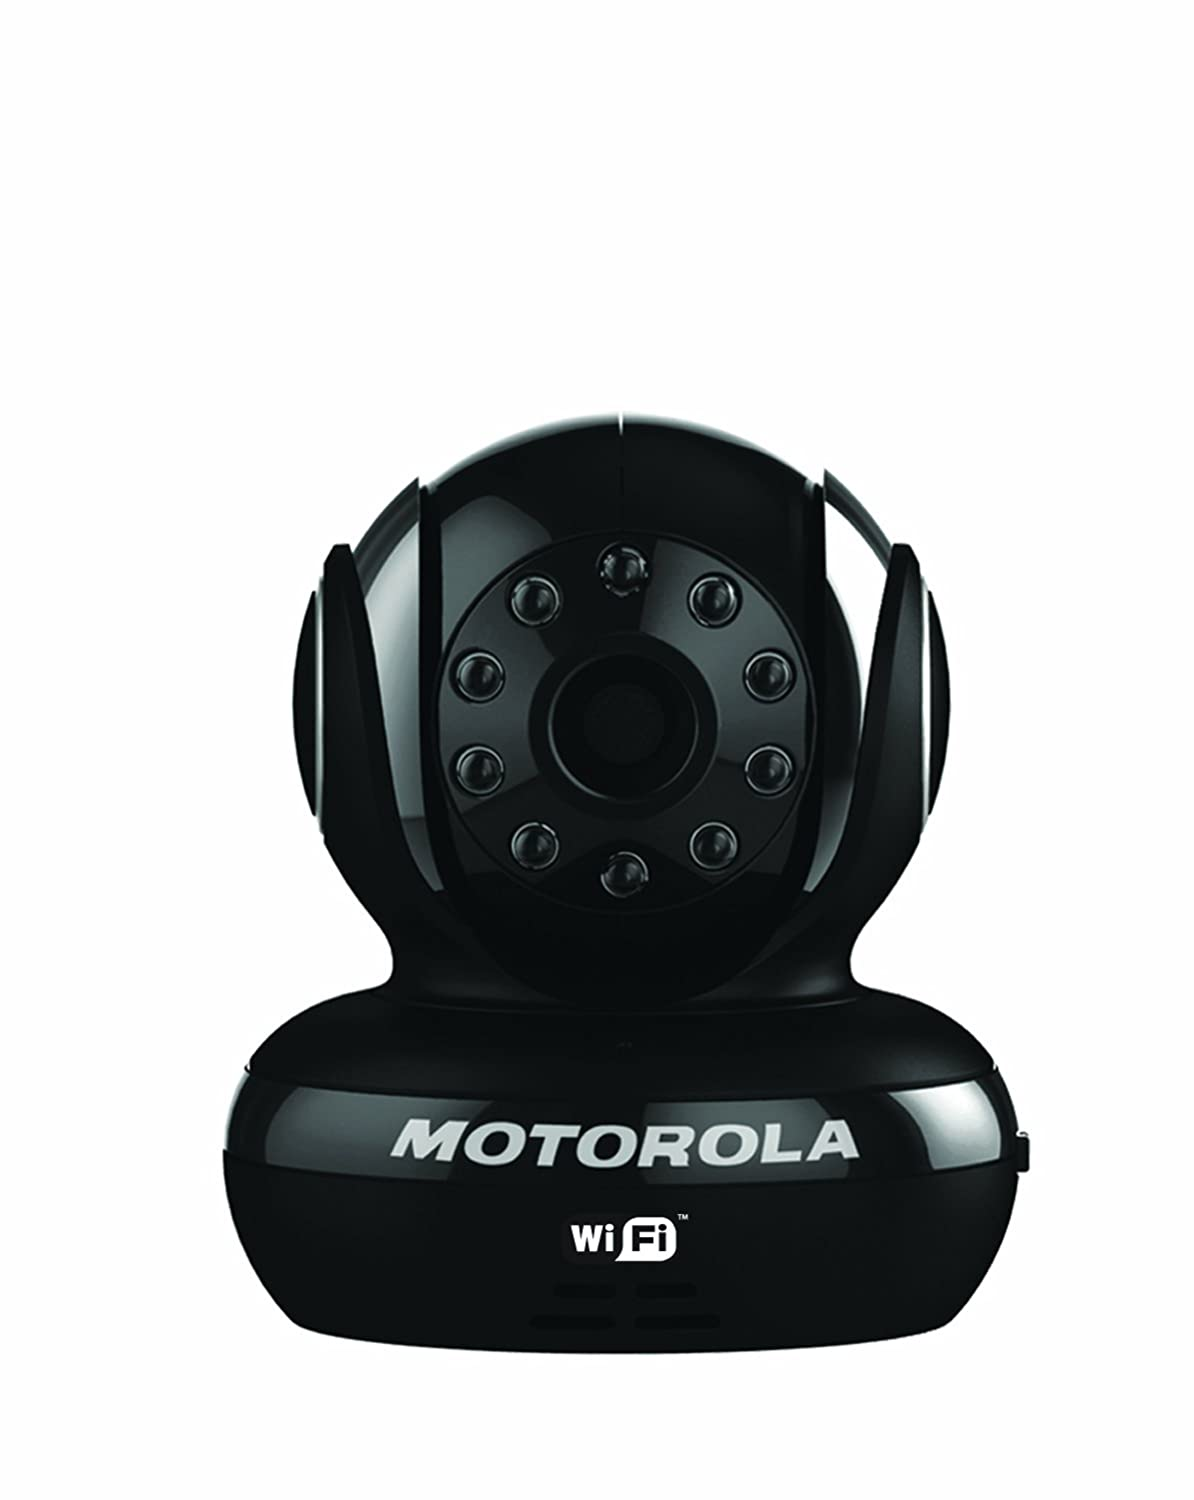 Motorola Scout1-B Wi-Fi Pet Monitor for Remote Viewing with iPhone and Android Smartphones and Tablets, Black Exclusive Group